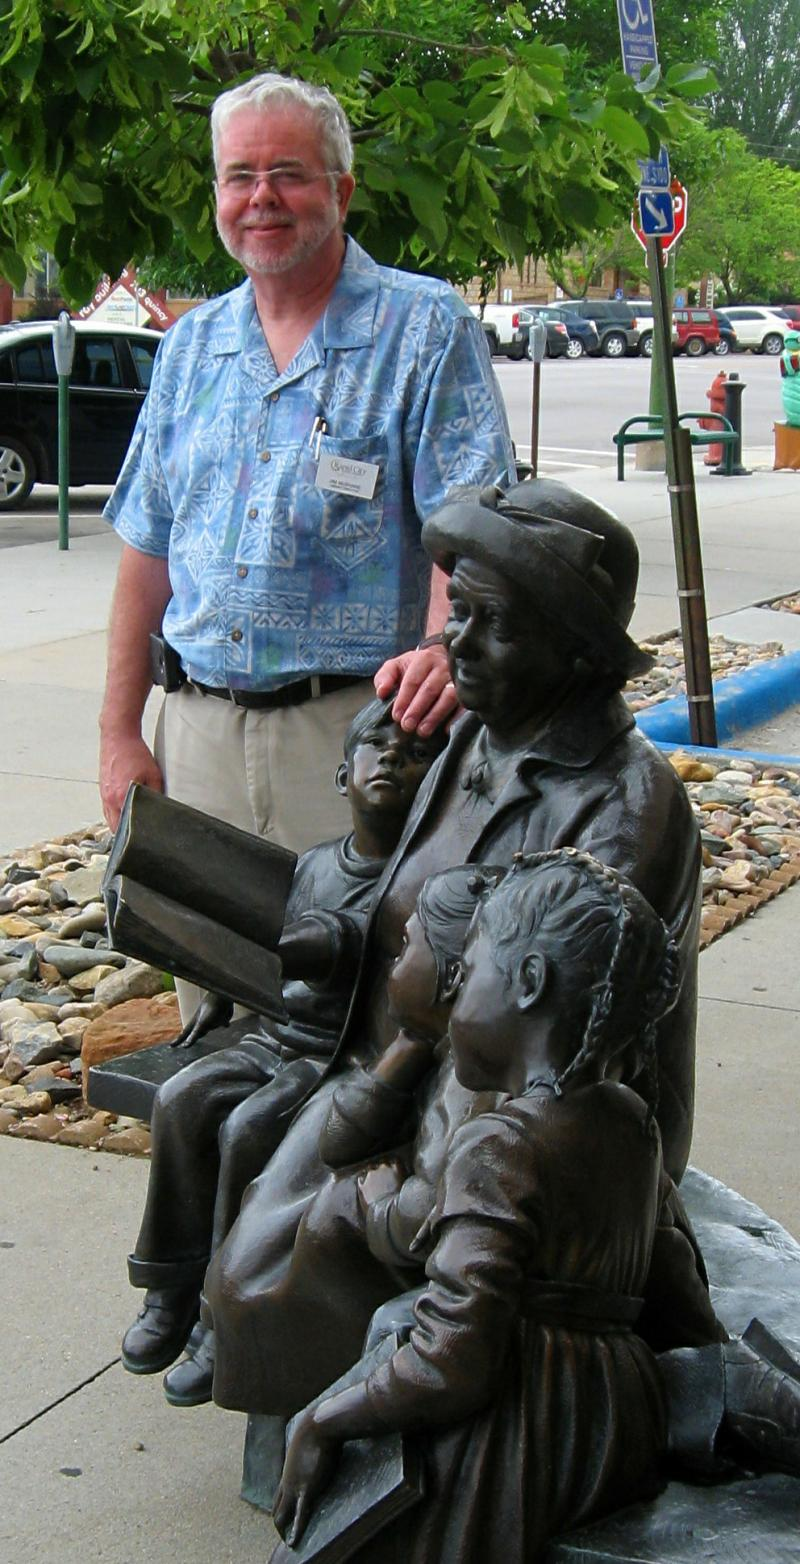 Jim McShane stands beside a sculpture outside the Rapid City Public Library.